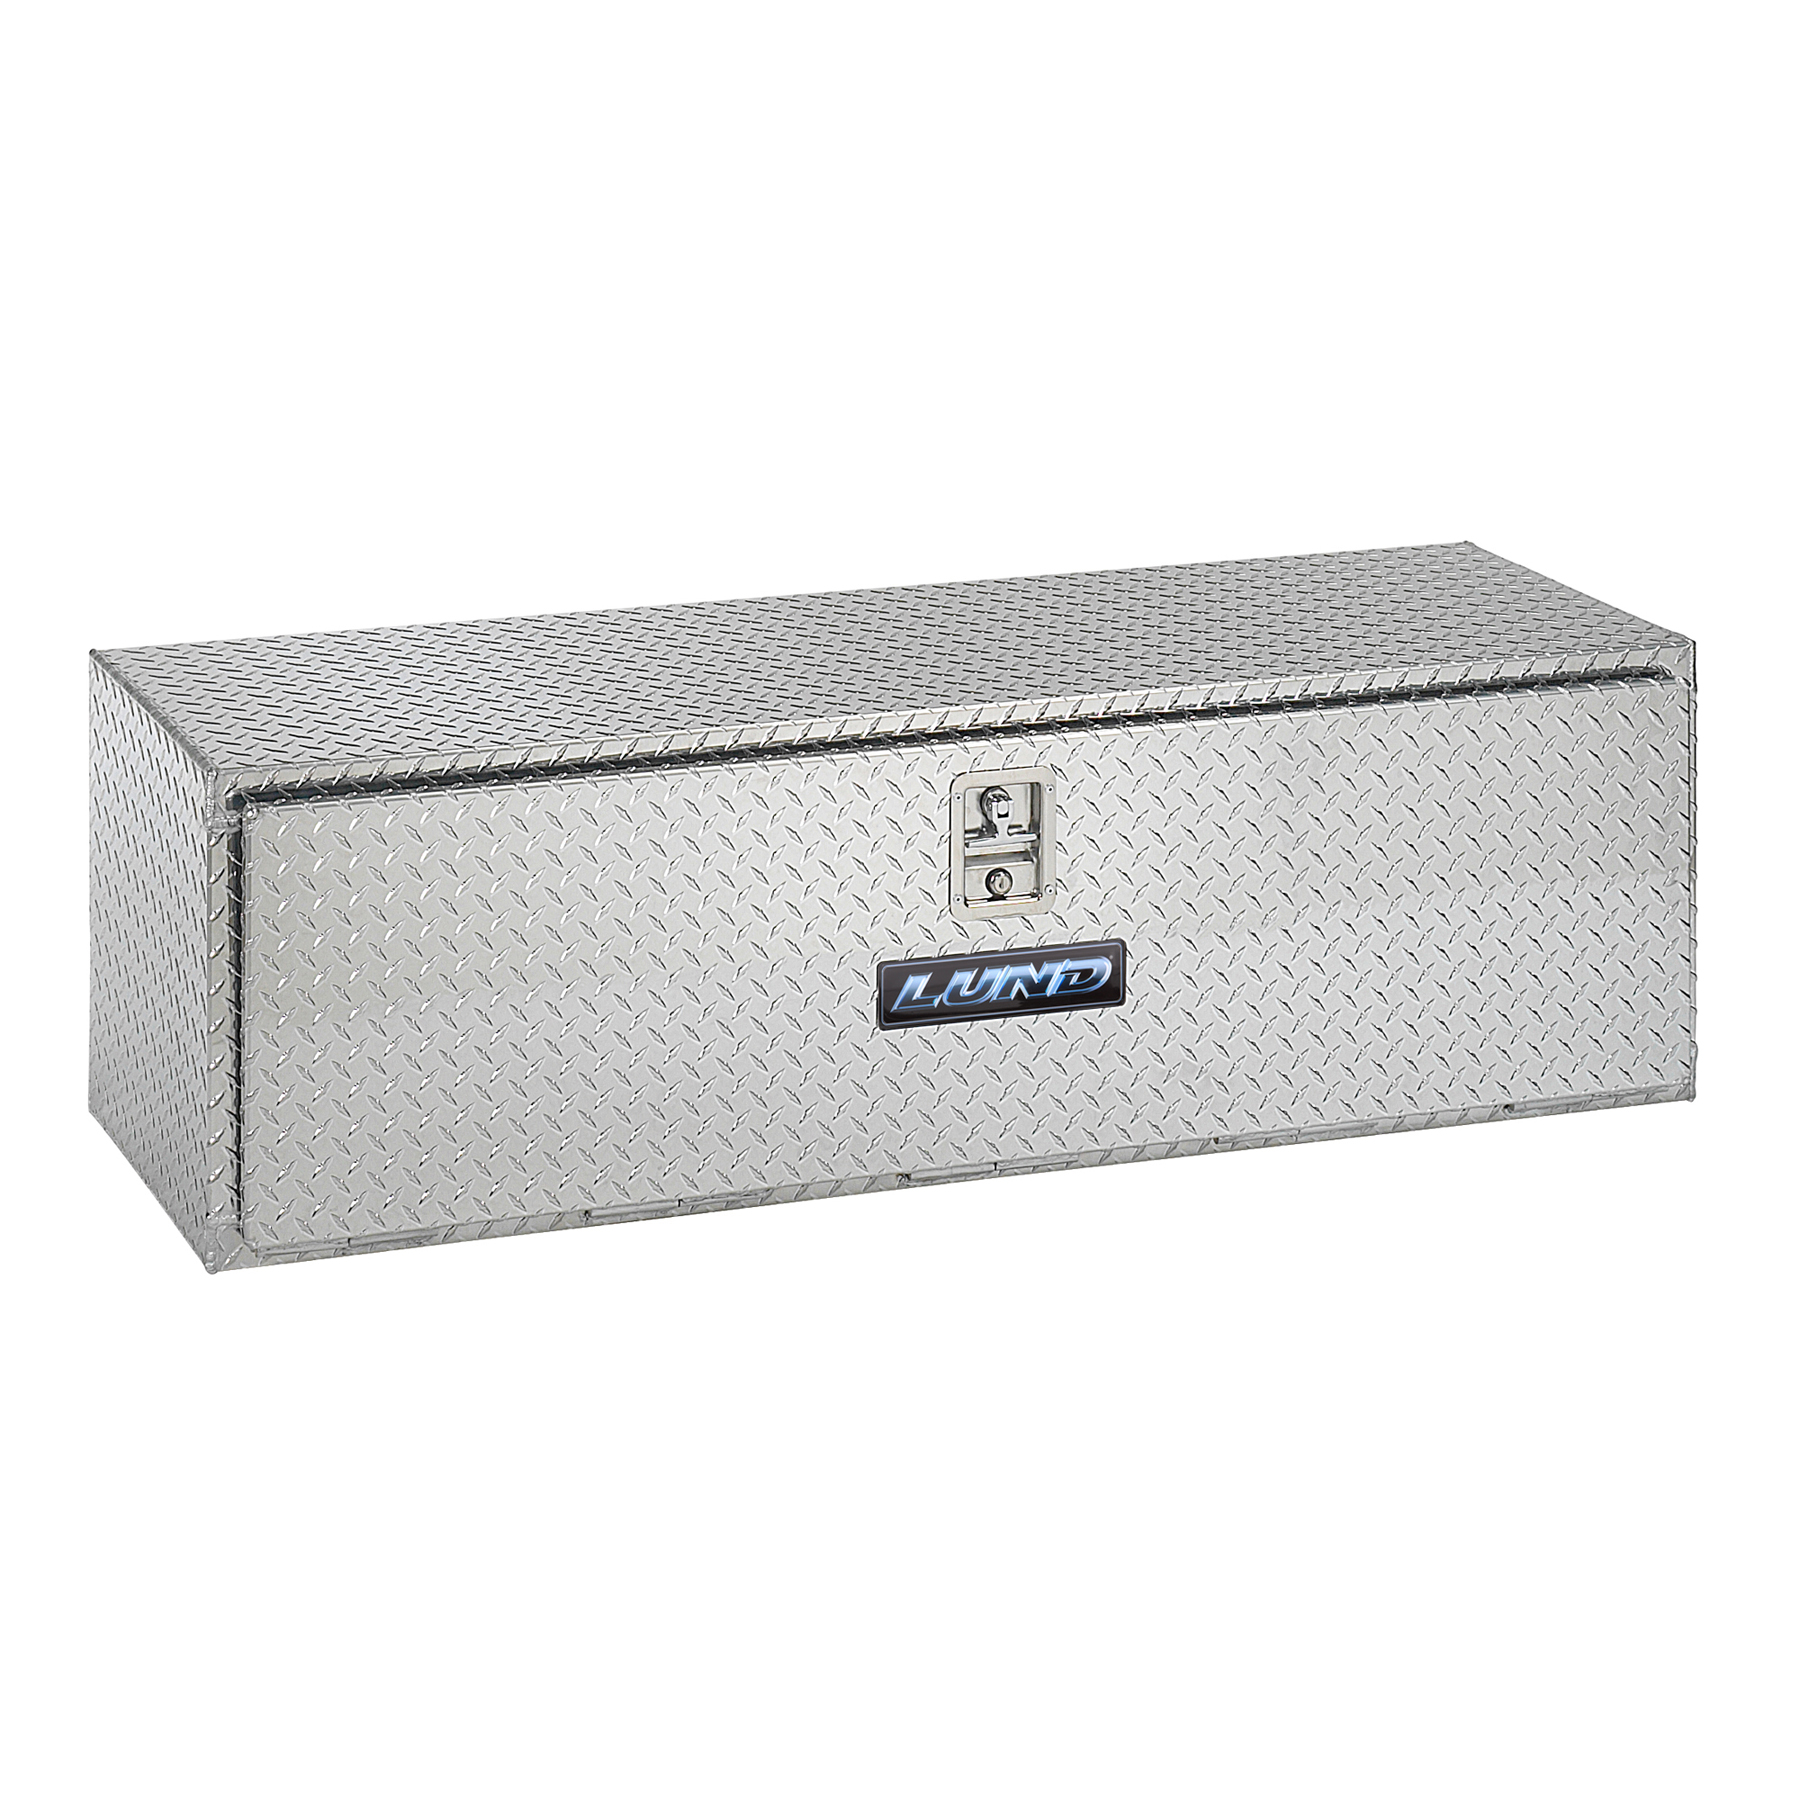 Does Bunnings Deliver Lund 60 Inch Underbody Truck Tool Box Aluminum Diamond